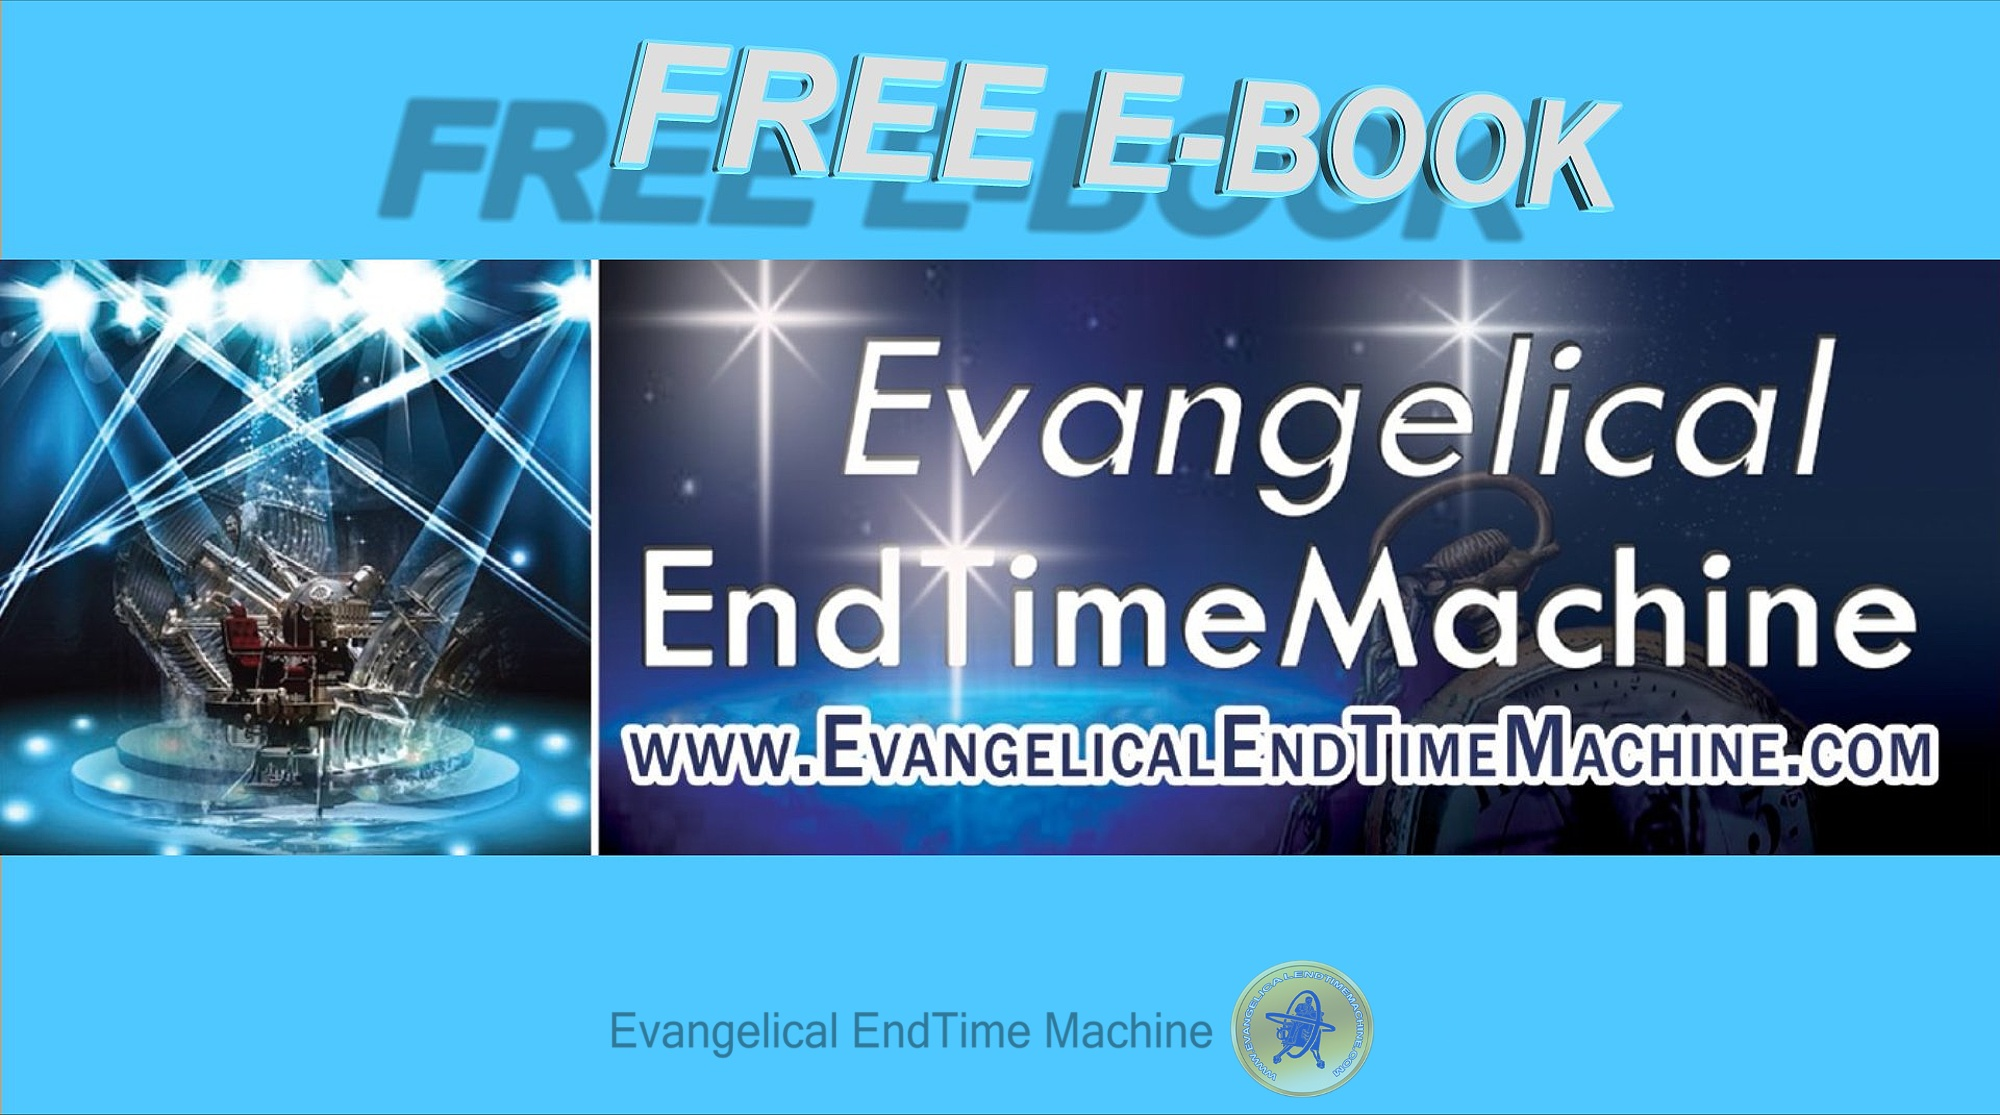 https://www.evangelicalendtimemachine.com/ebook/